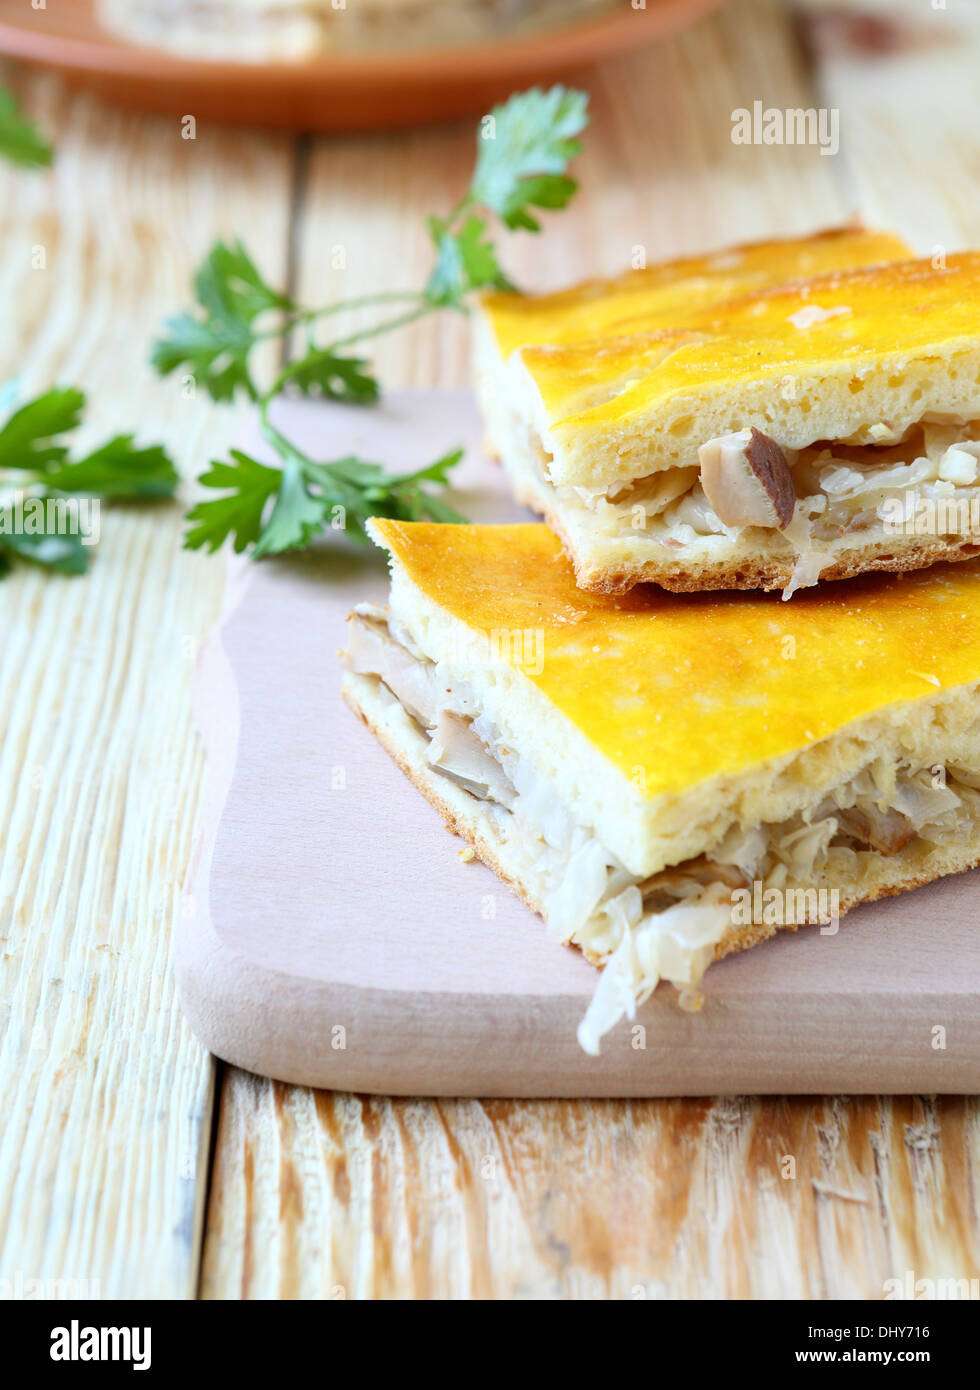 slices of cake with fried cabbage, food - Stock Image